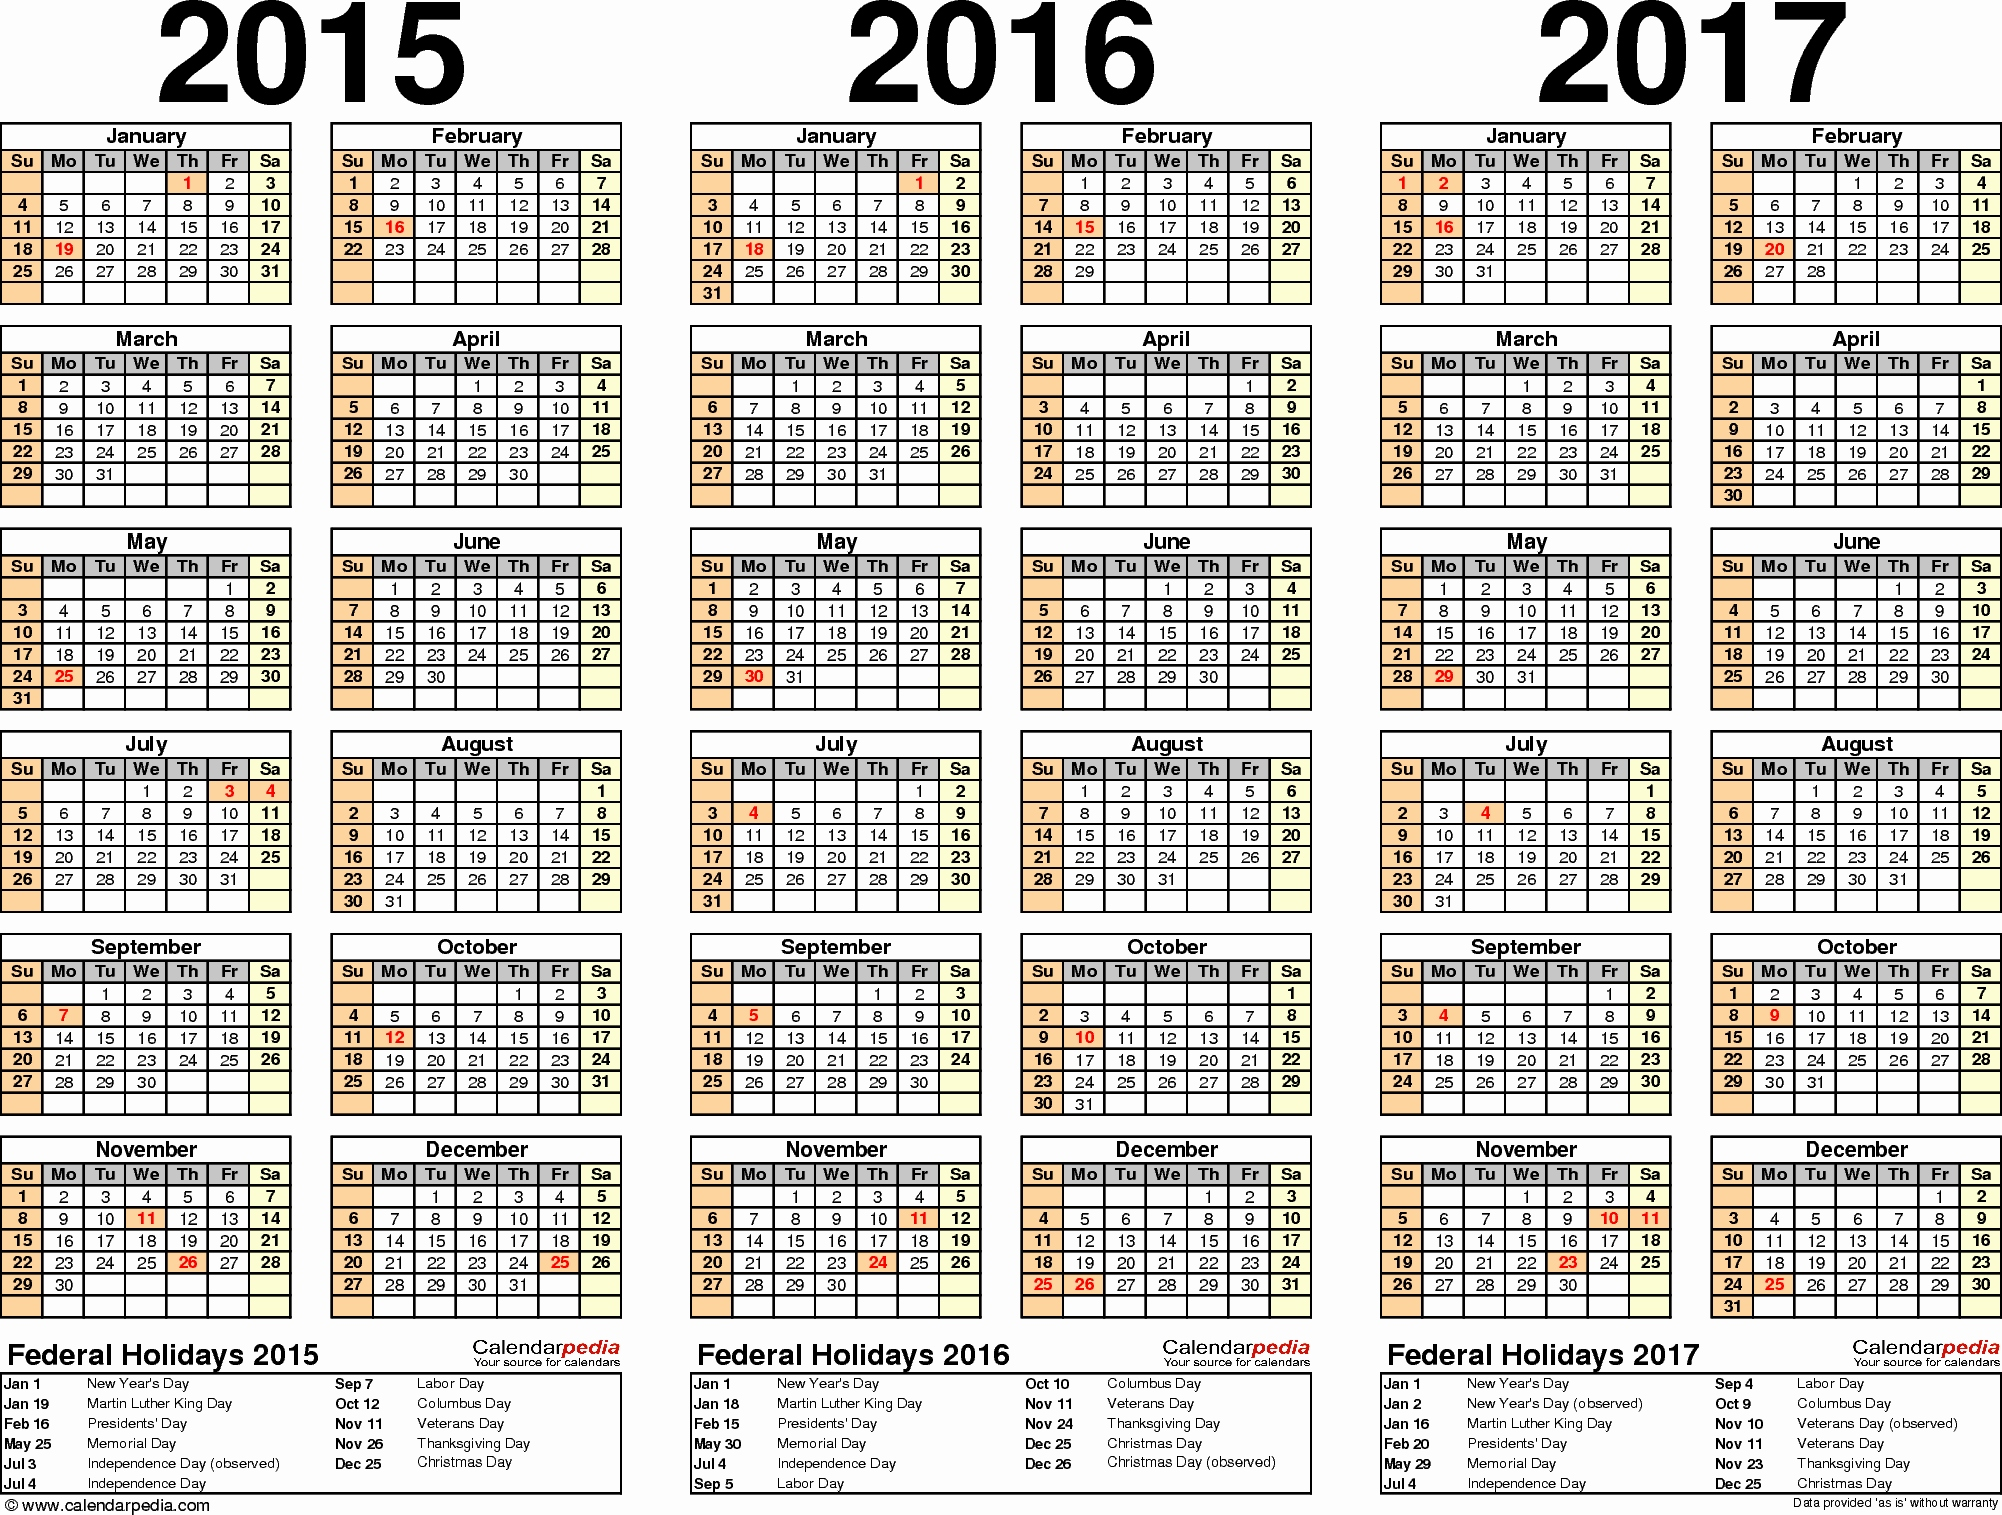 Monatskalender 2016 Excel Neu 2015 2016 2017 Calendar 4 Three Year Printable Pdf Calendars